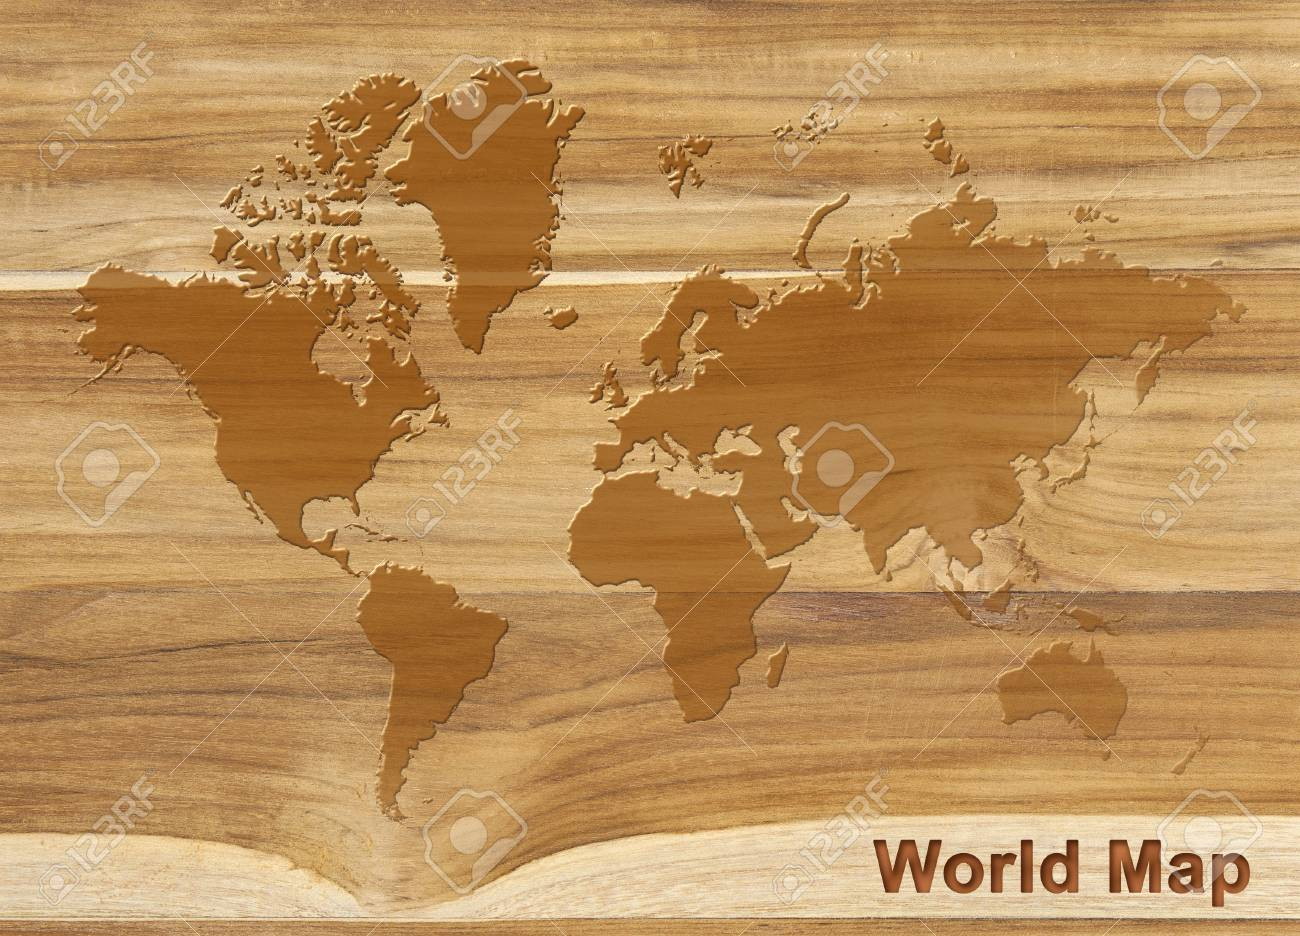 world map on texture of teak wood background, wood plank